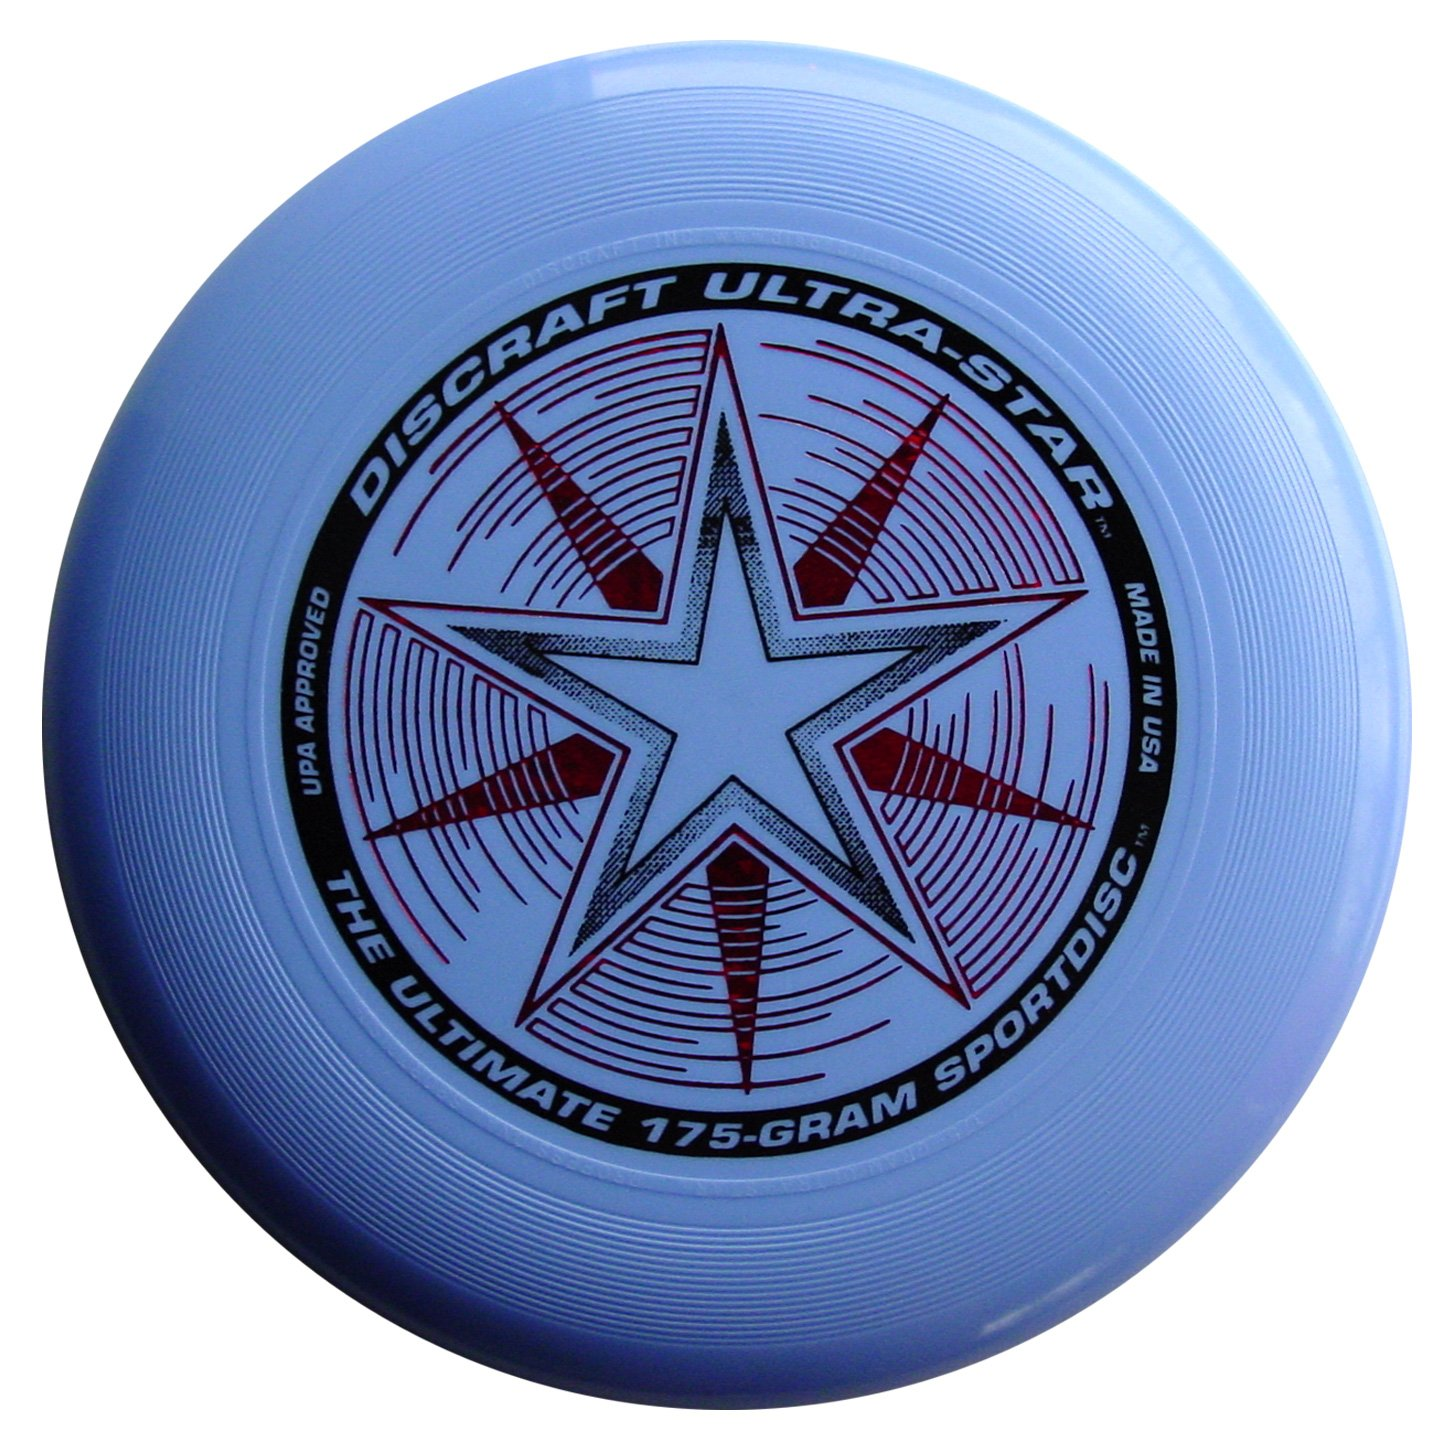 Discraft 175 gram Ultra Star Sport Disc, Light Blue with Deluxe Packaging by Discraft